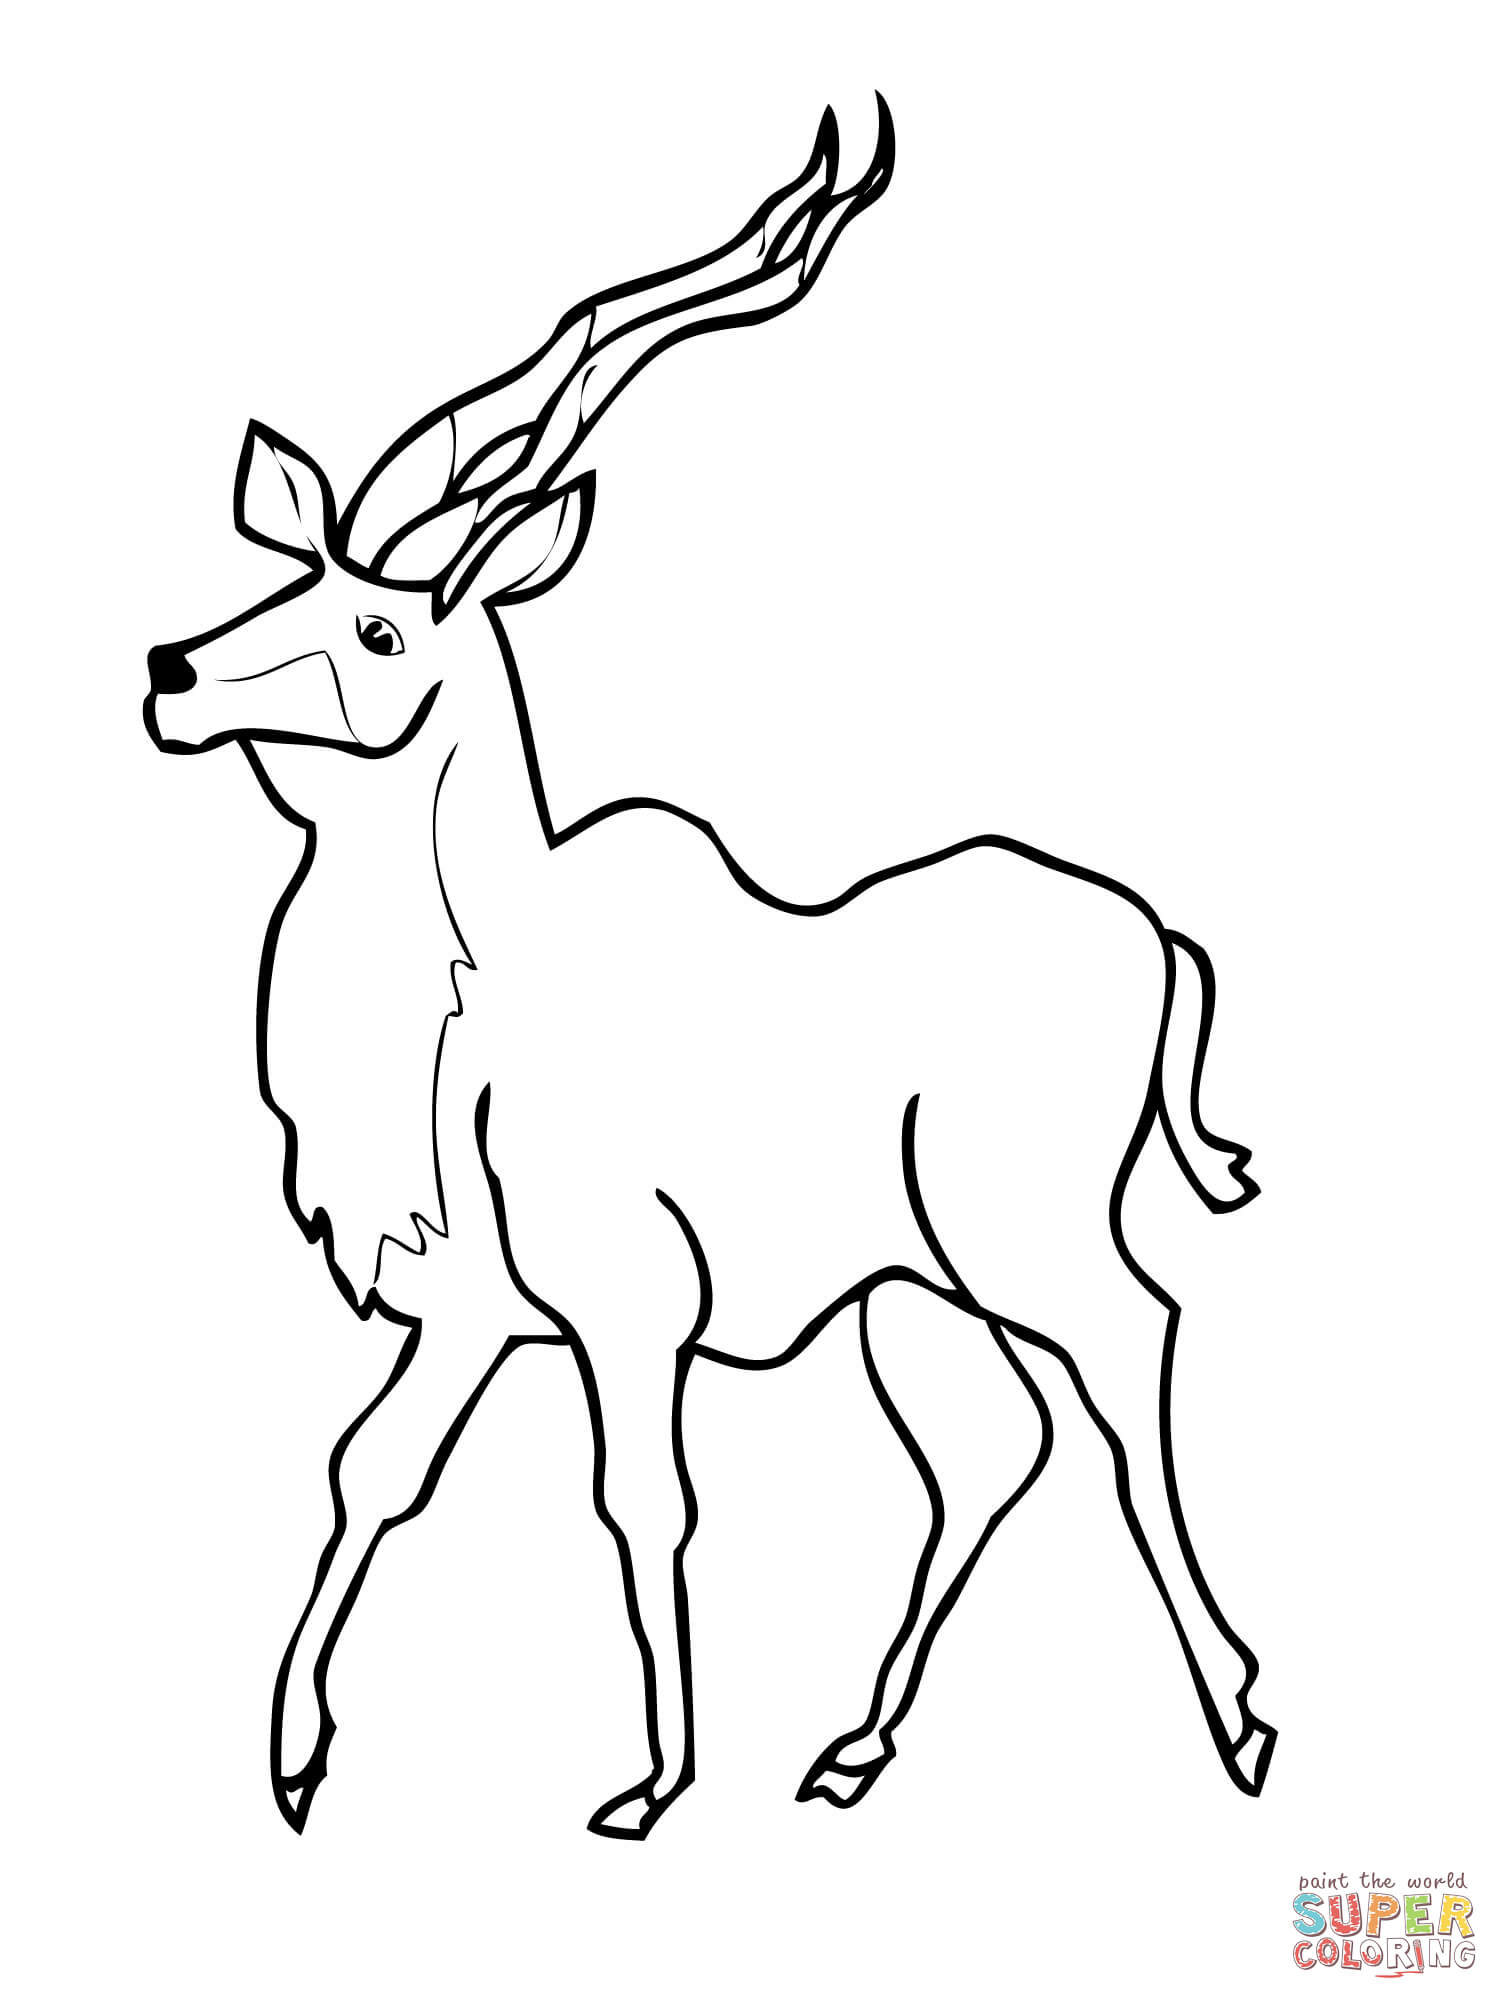 Kudu Coloring Page Free Printable Coloring Pages